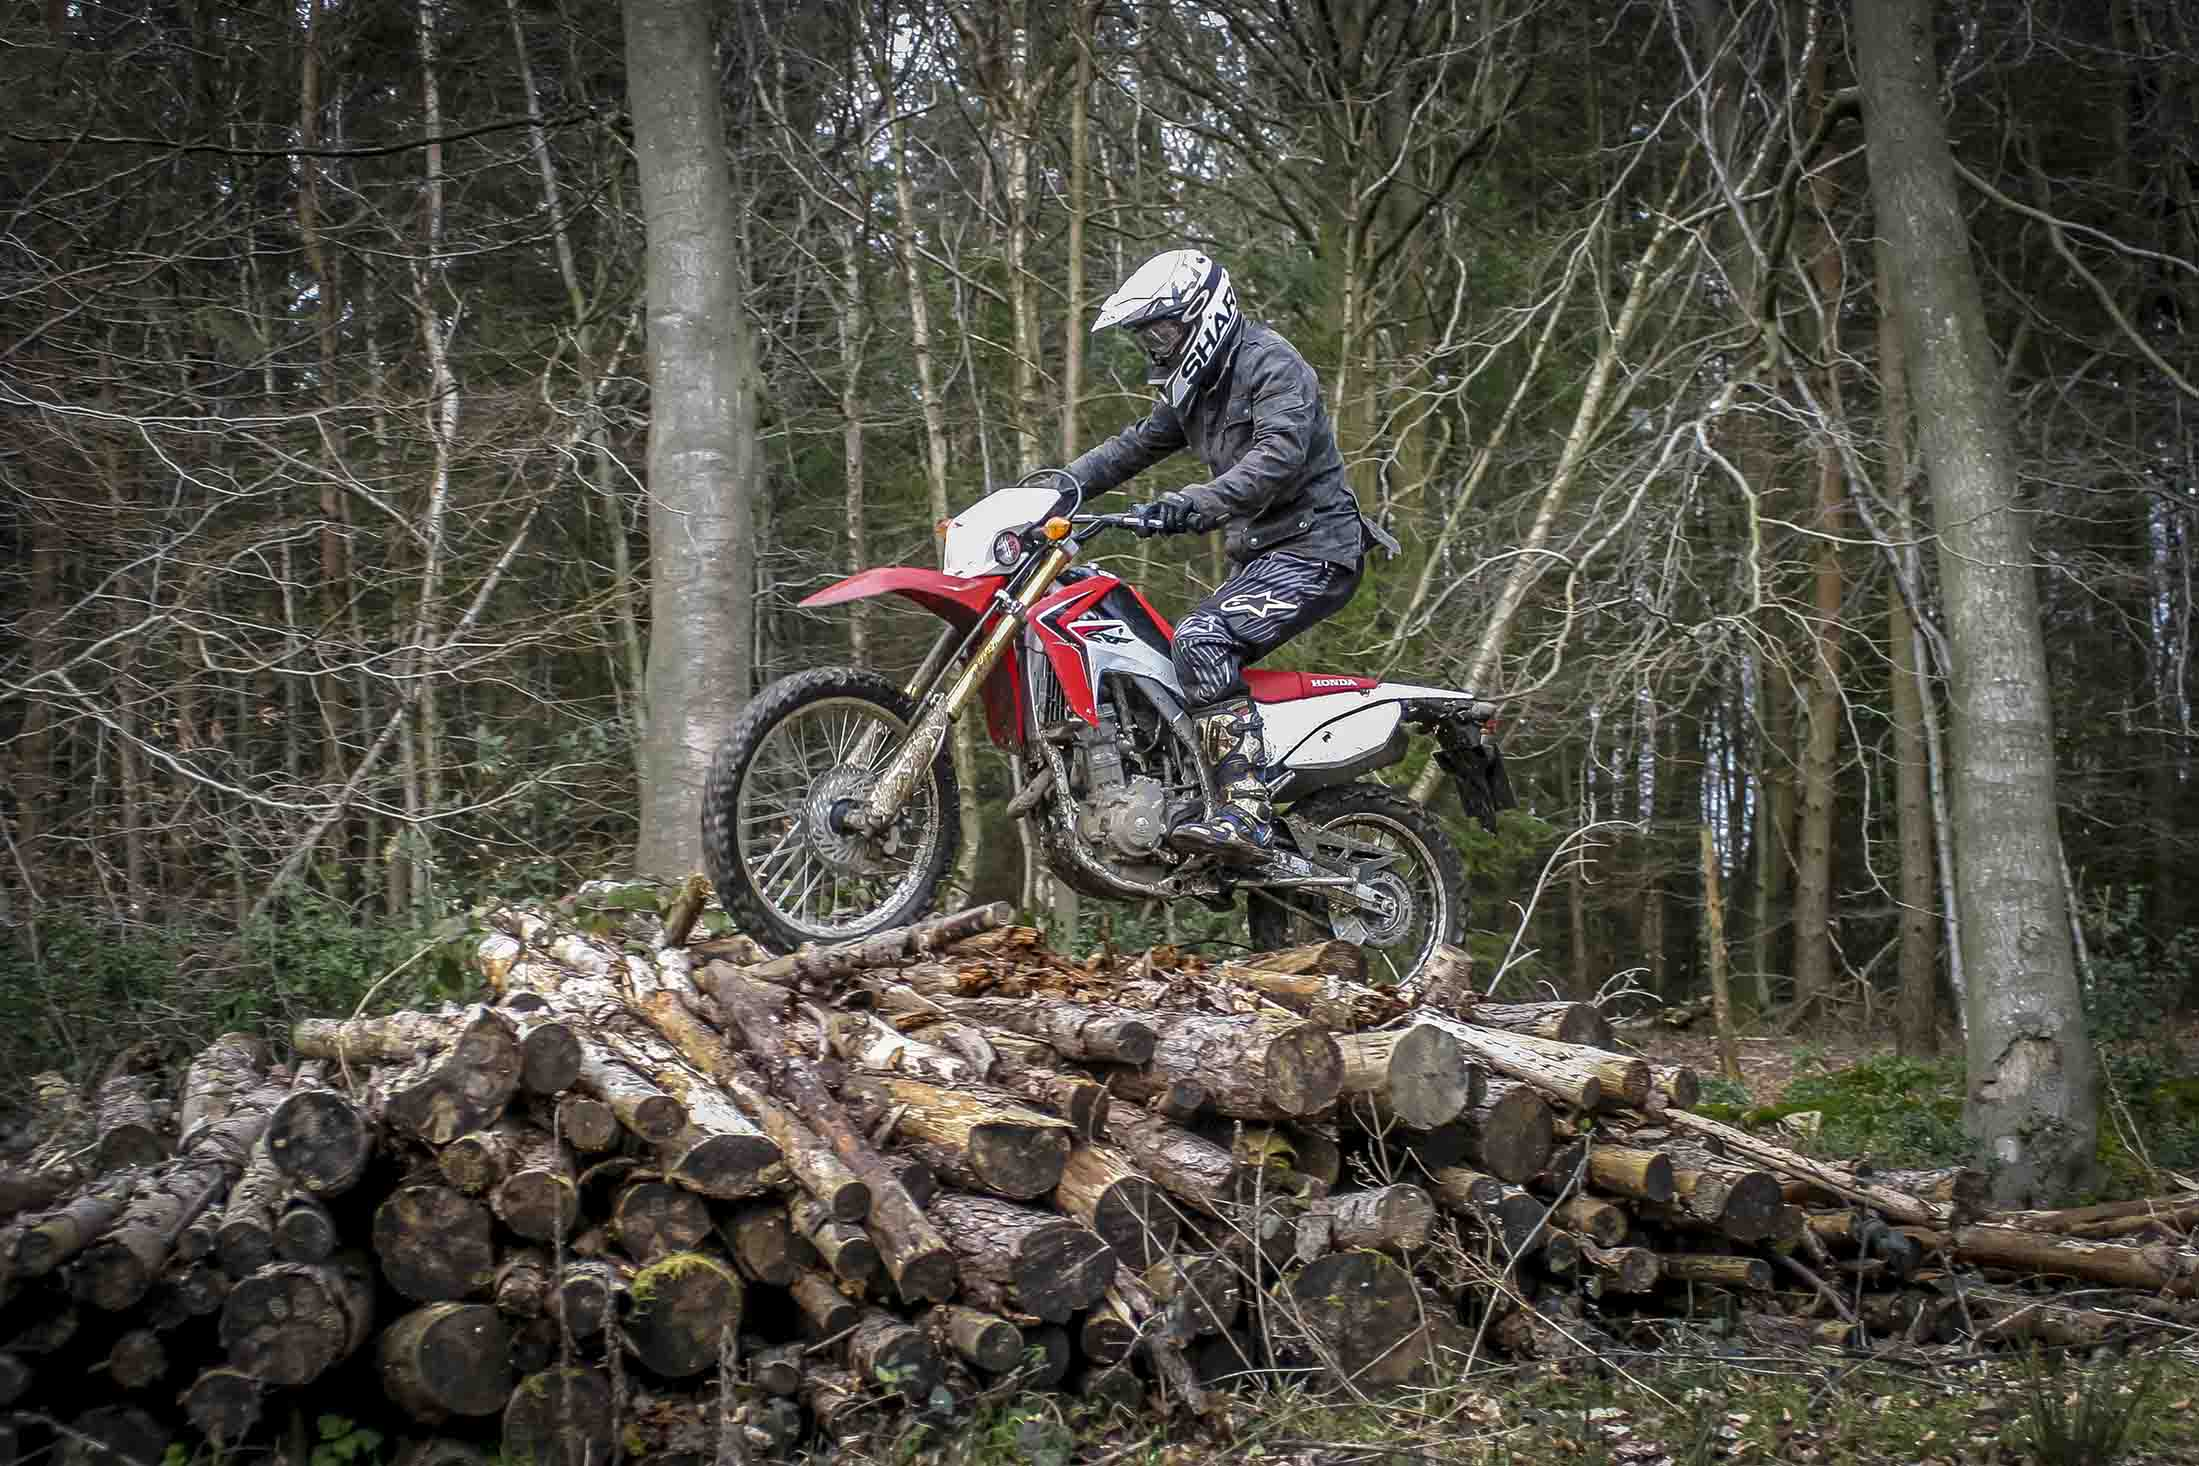 Honda Crf250l Long Term Test The Ultimate Second Bike Superbike 2014 250cc Dirt Slippery Logs No Problem For Crf Pic Credit Phil Steinhardt